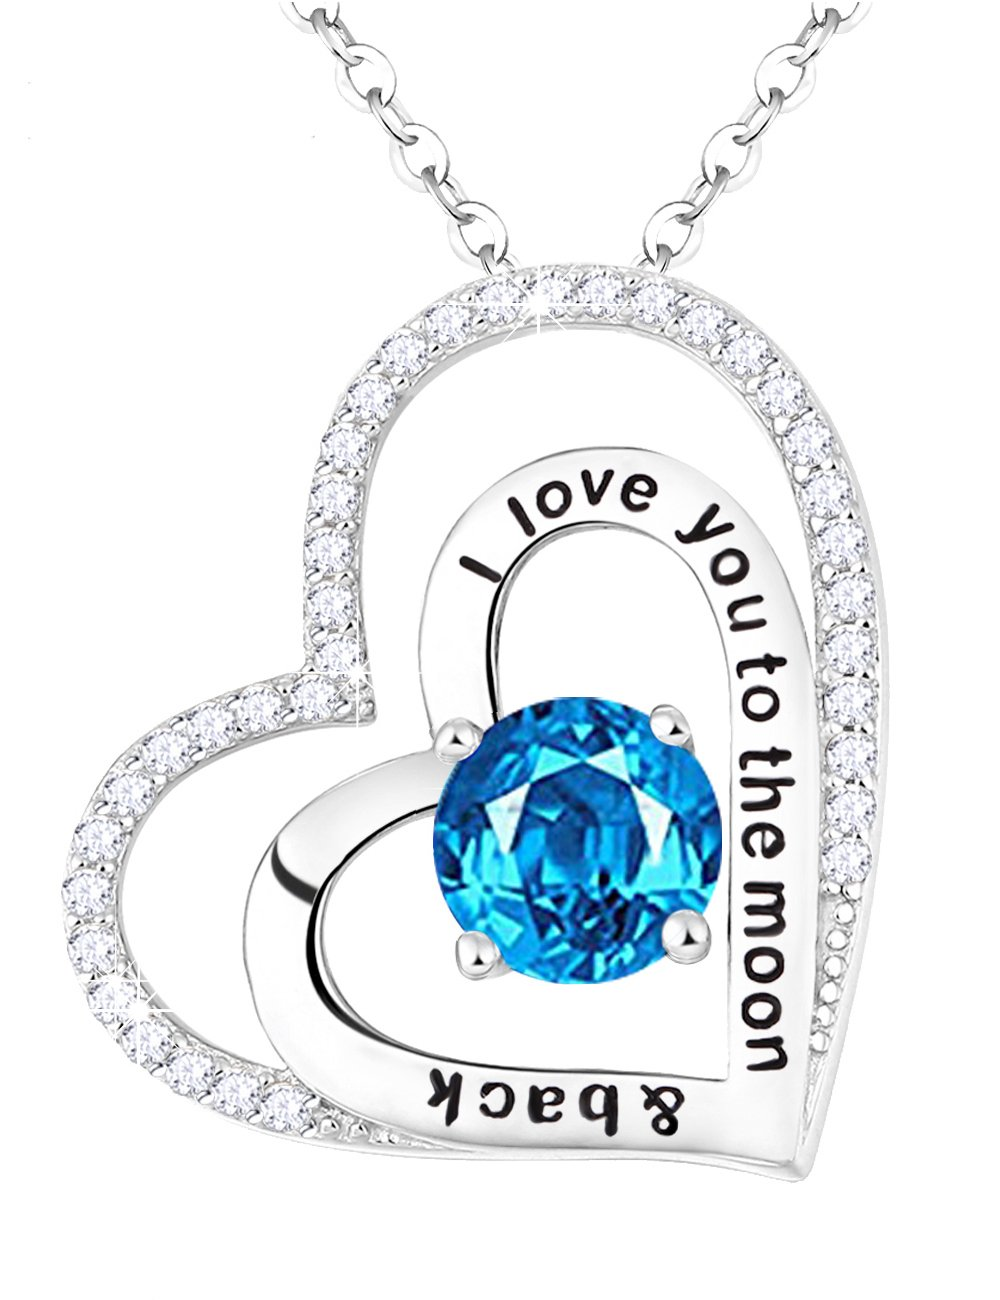 Birthstone Gifts Jewelry Natural Swiss Blue Topaz Double Love Heart Necklace for Women Birthday Anniversary Gift for Her Lady Wife Girlfriend Sterling Silver Heart Pendant, 18''+2'' Chain